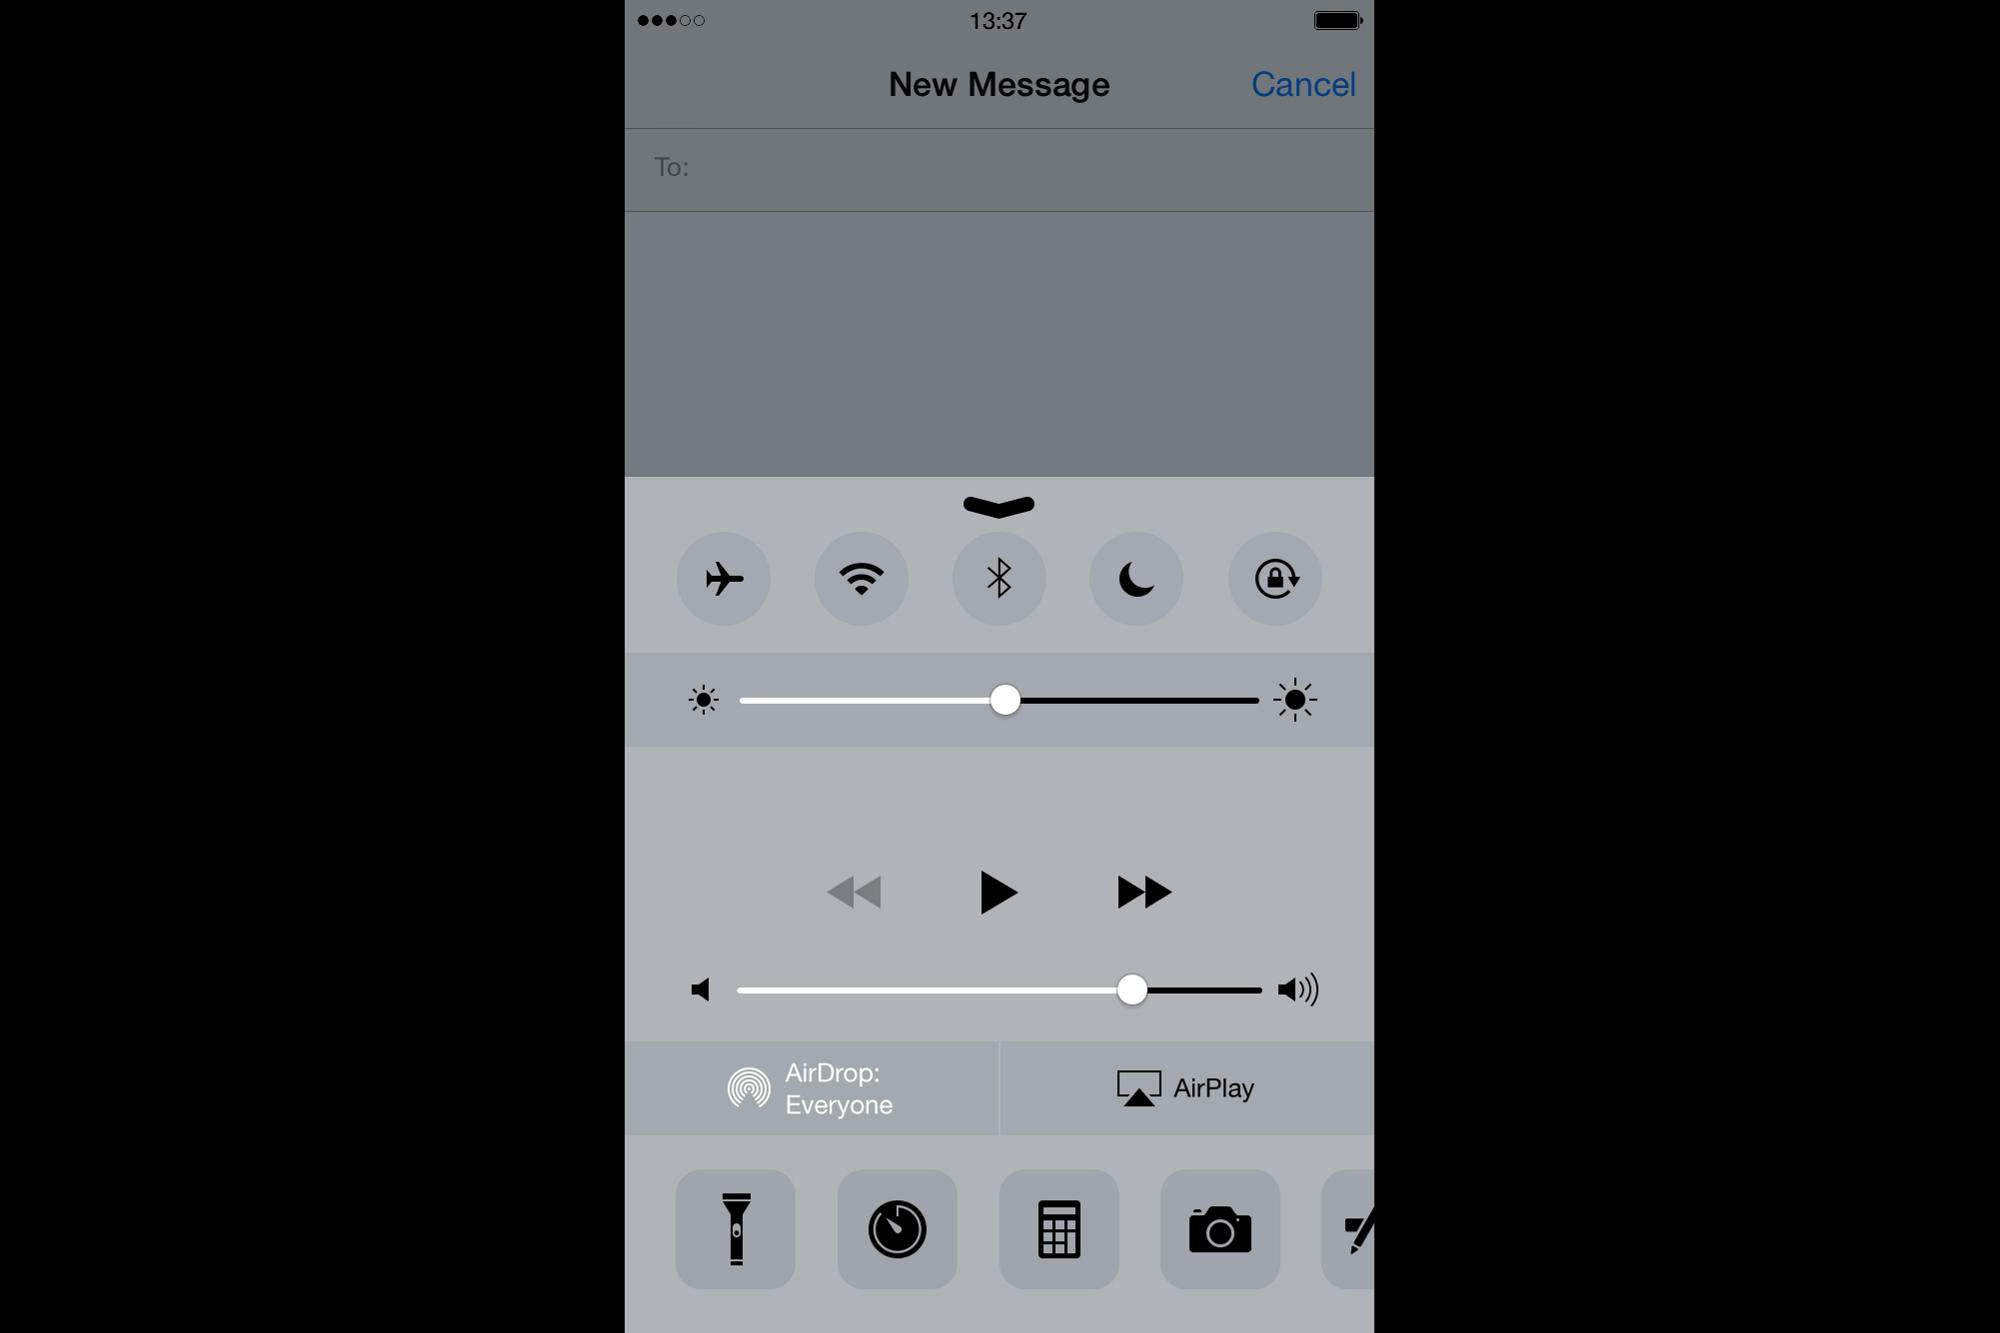 iPhone New Message